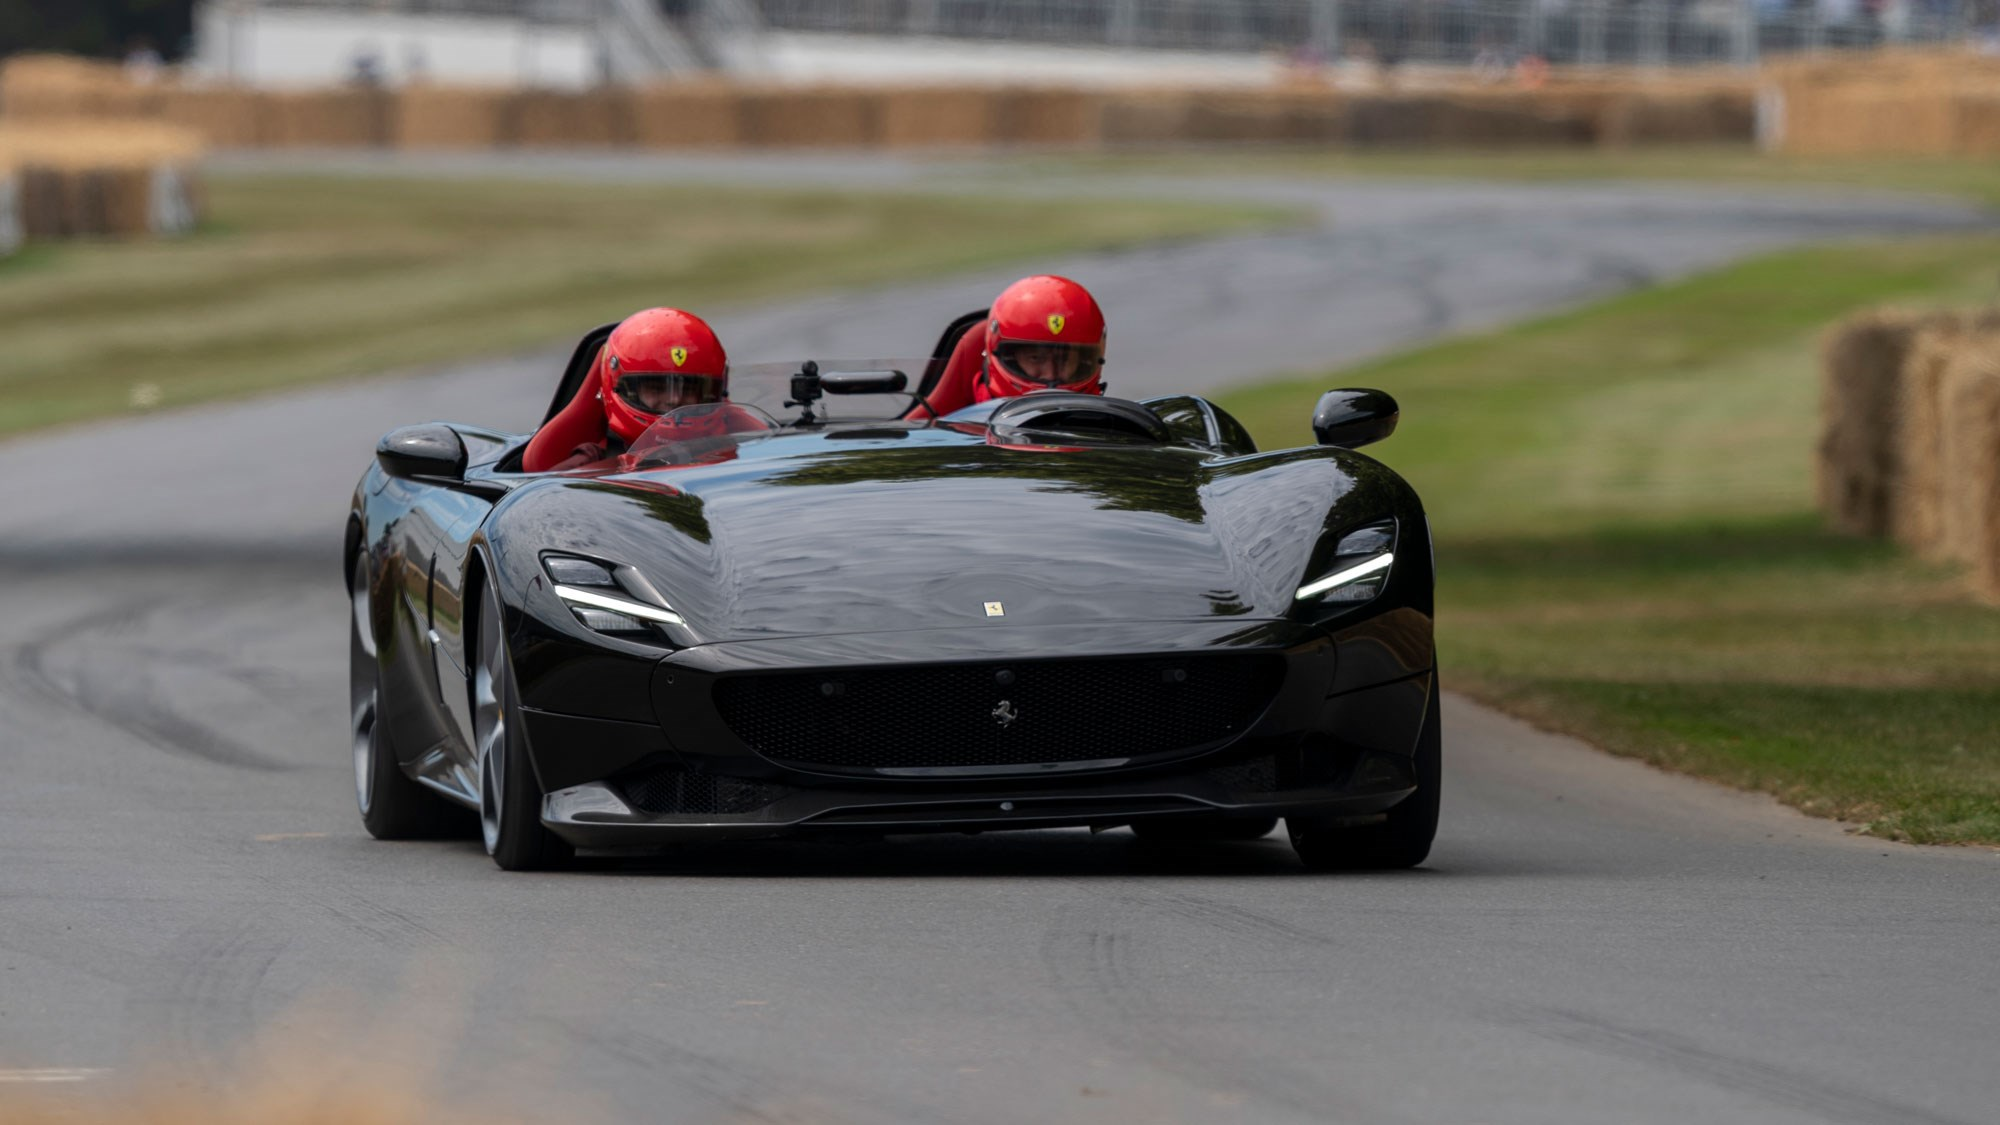 Ferrari Monza Sp1 And Sp2 A Ride In Maranellos Special